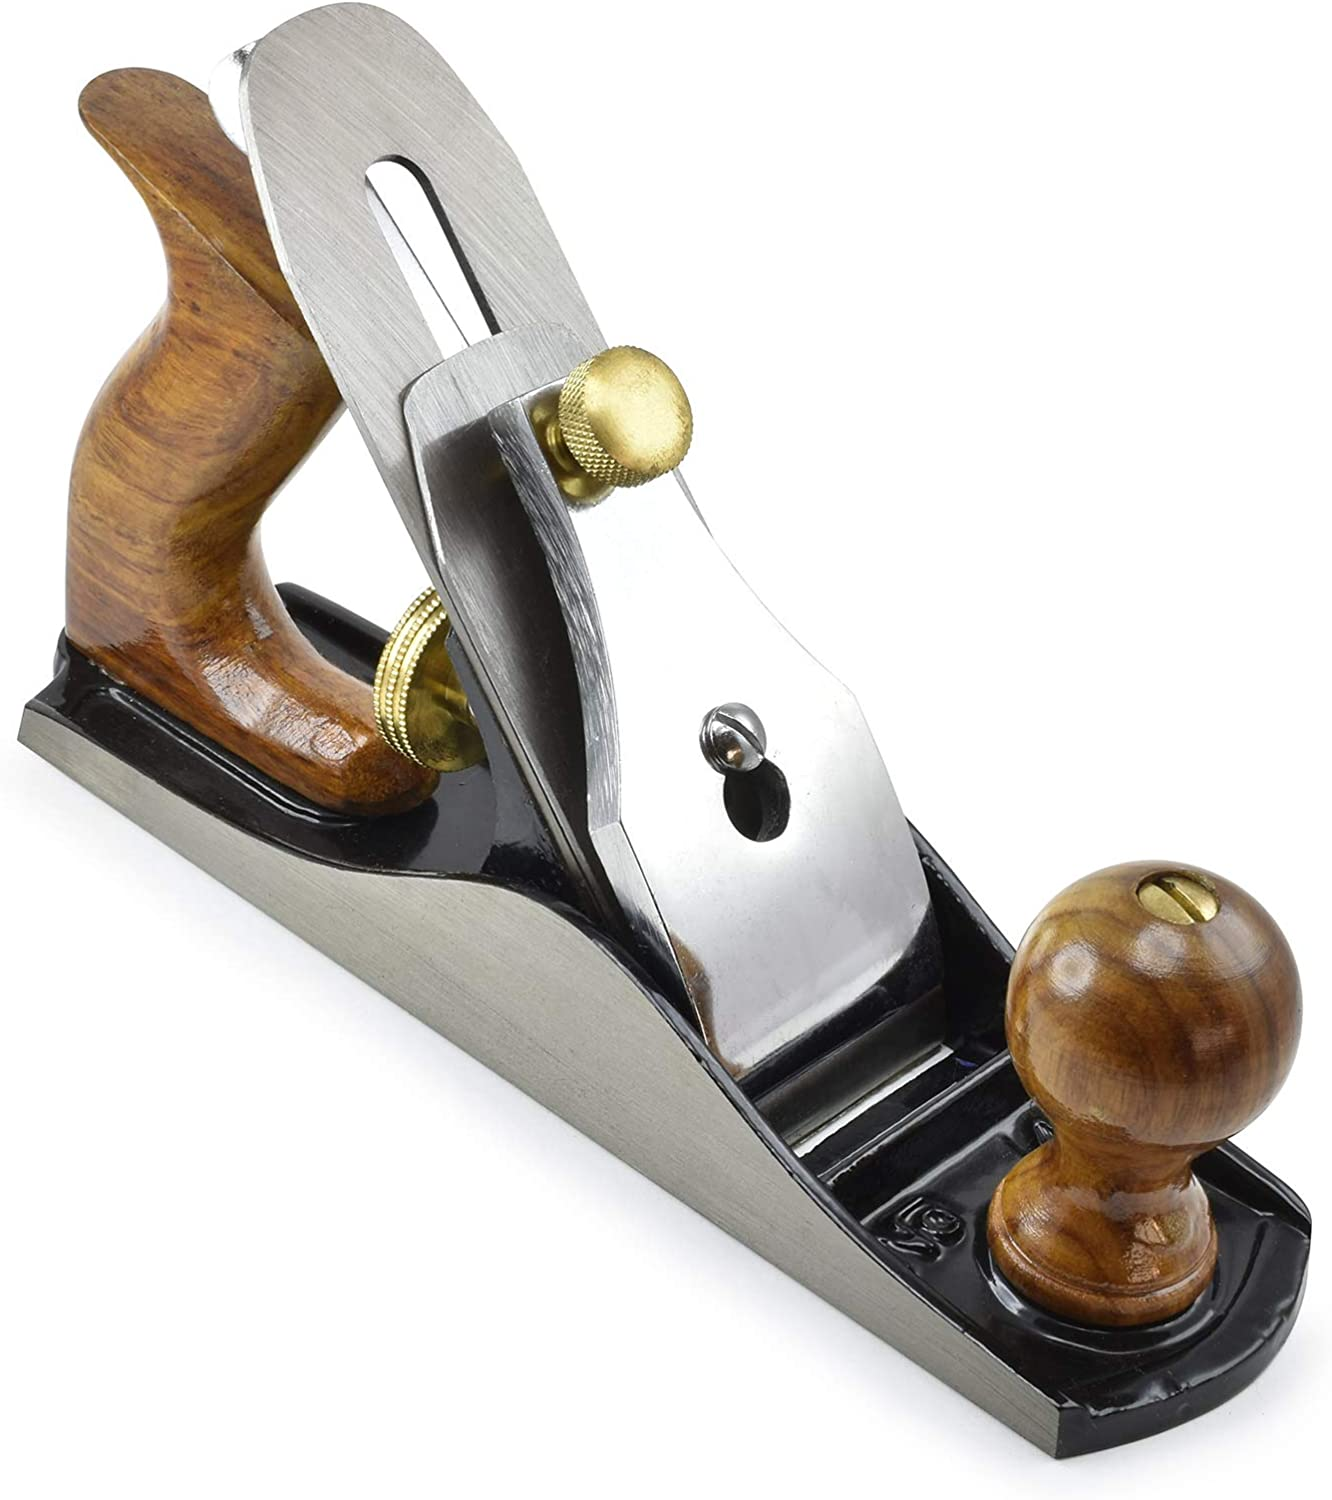 10 Inch Time sale Quality inspection Smoothing Plane